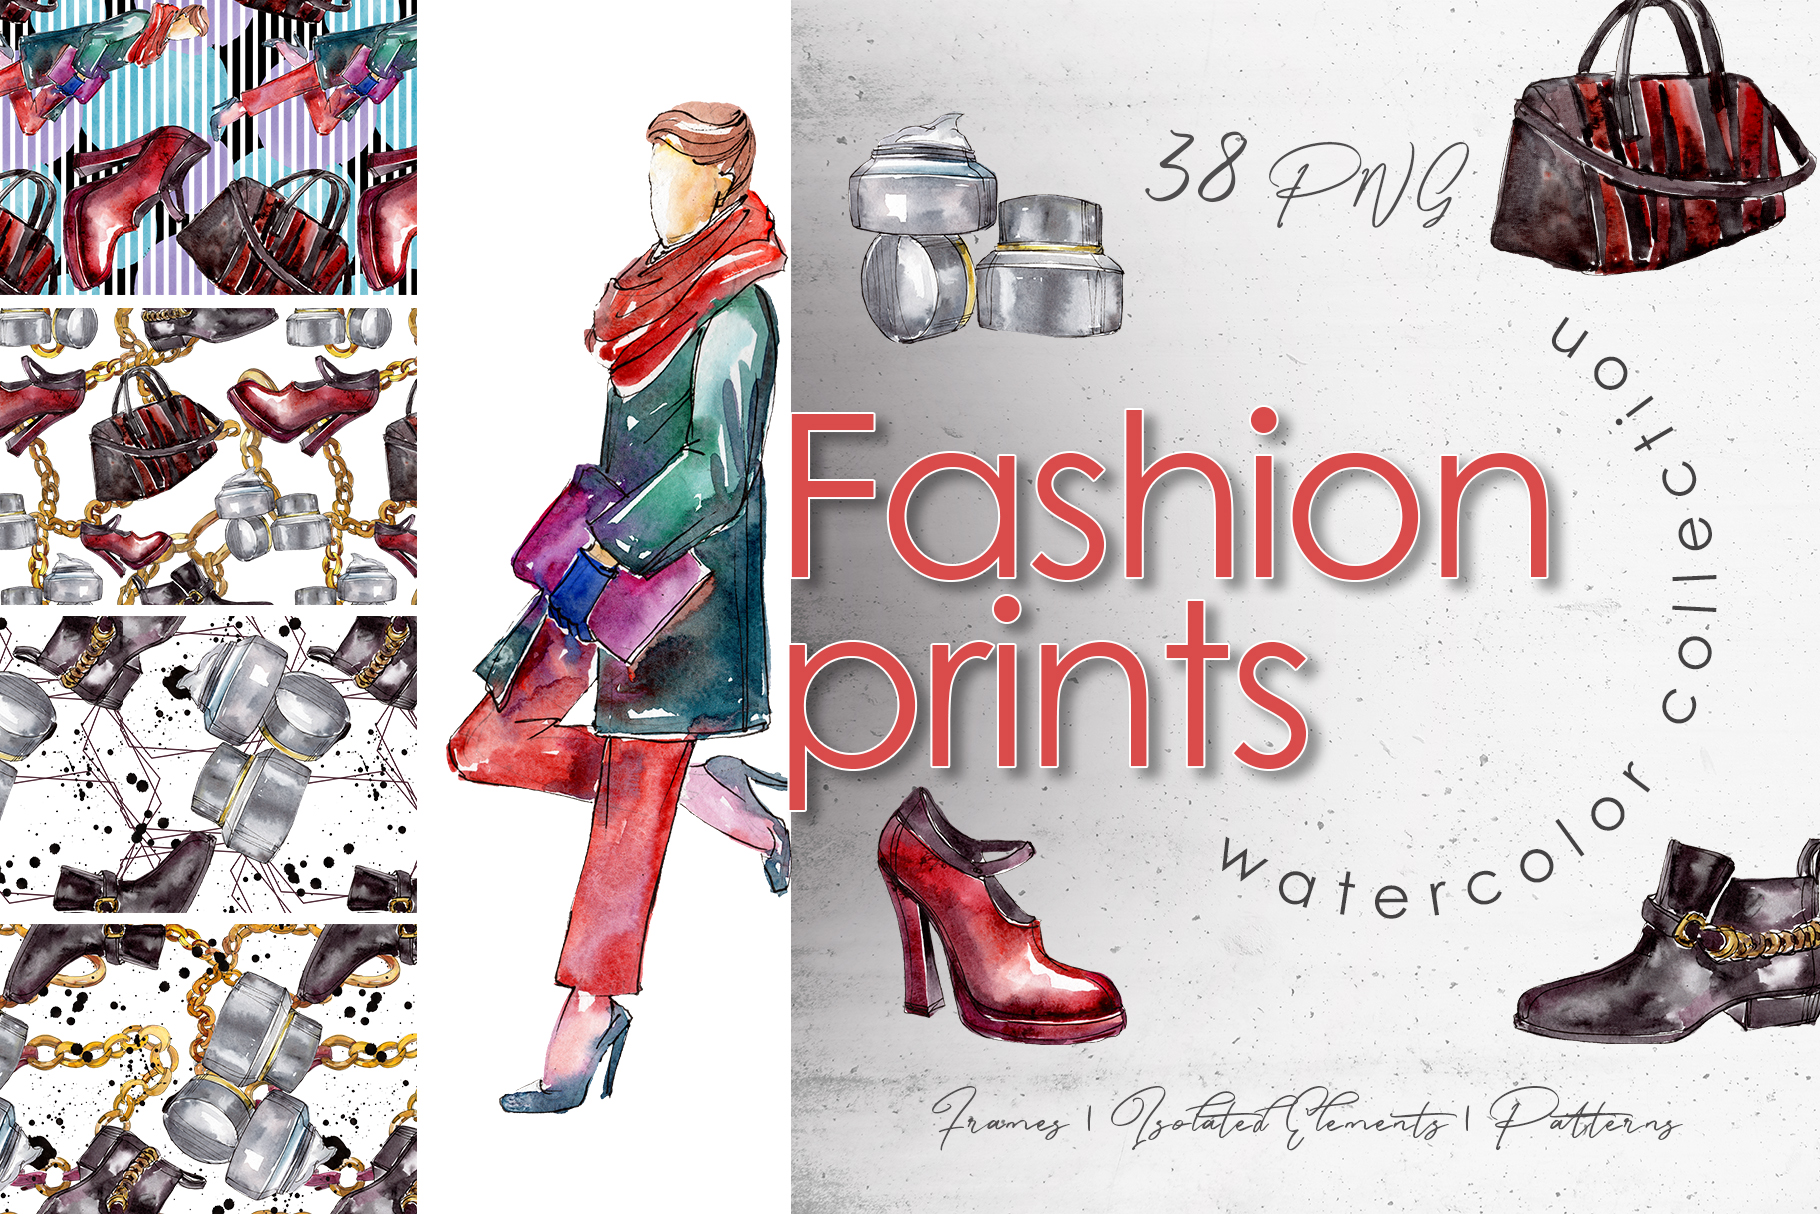 Download Free Fashion Prints Watercolor Graphic By Mystocks Creative Fabrica for Cricut Explore, Silhouette and other cutting machines.